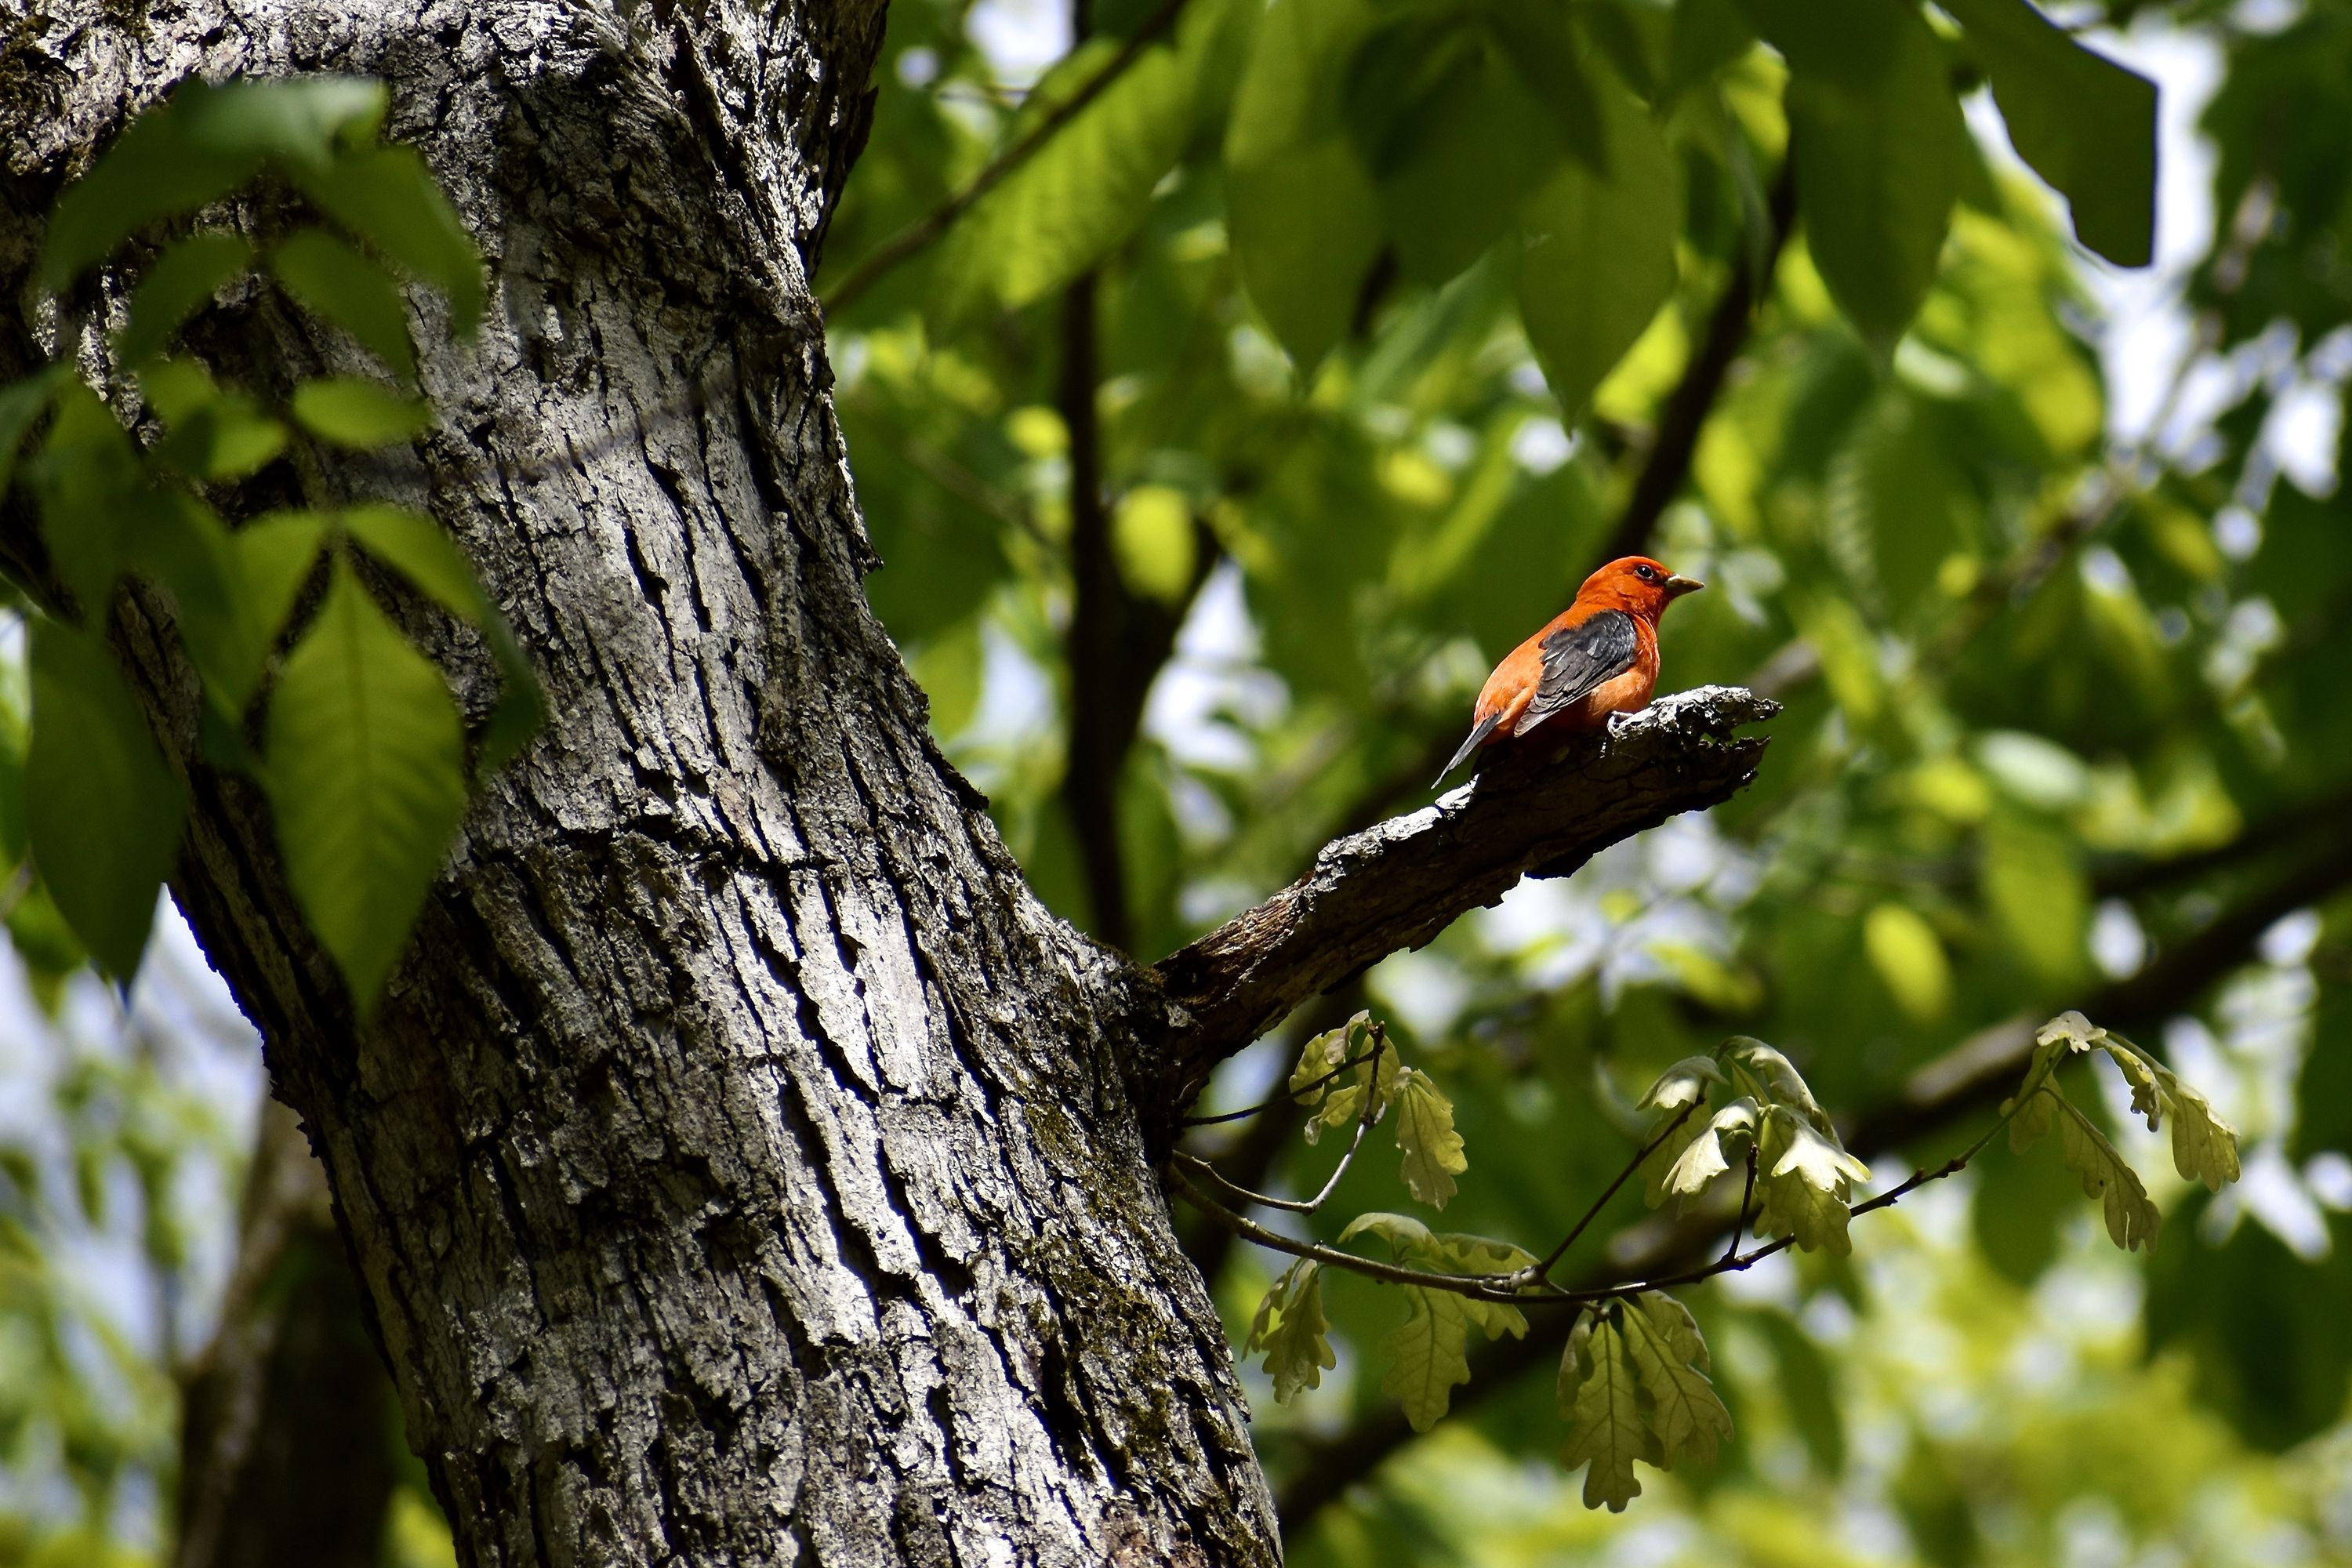 A bright red bird with black wings and a black tail perches on the end of a short, stubby branch. Green leaves form a thick canopy behind the bird.